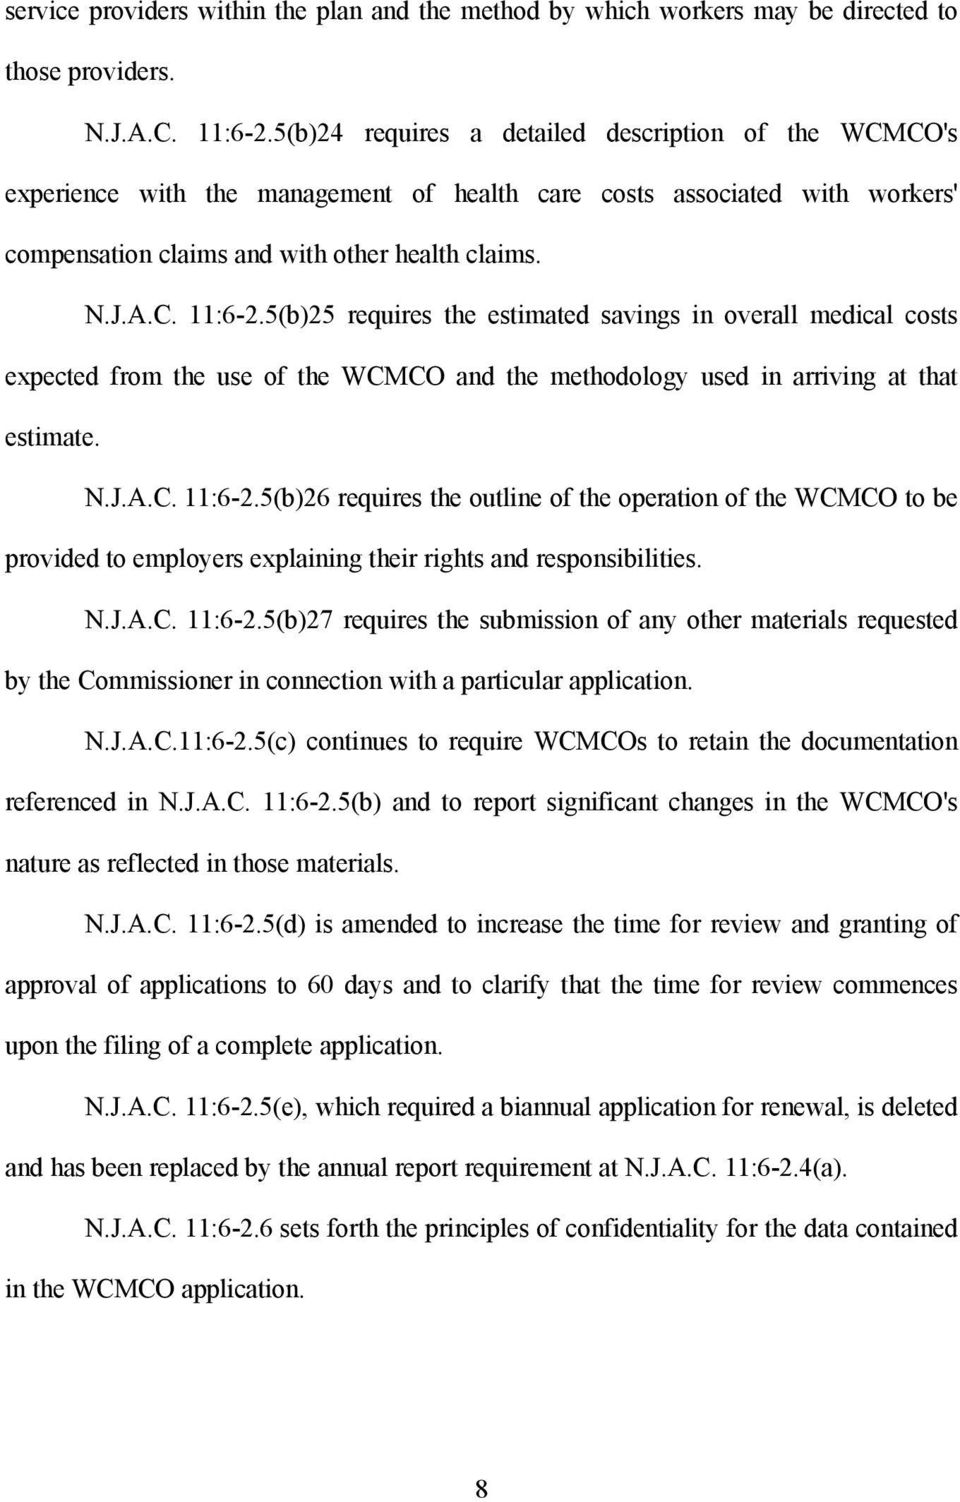 5(b)25 requires the estimated savings in overall medical costs expected from the use of the WCMCO and the methodology used in arriving at that estimate. N.J.A.C. 11:6-2.